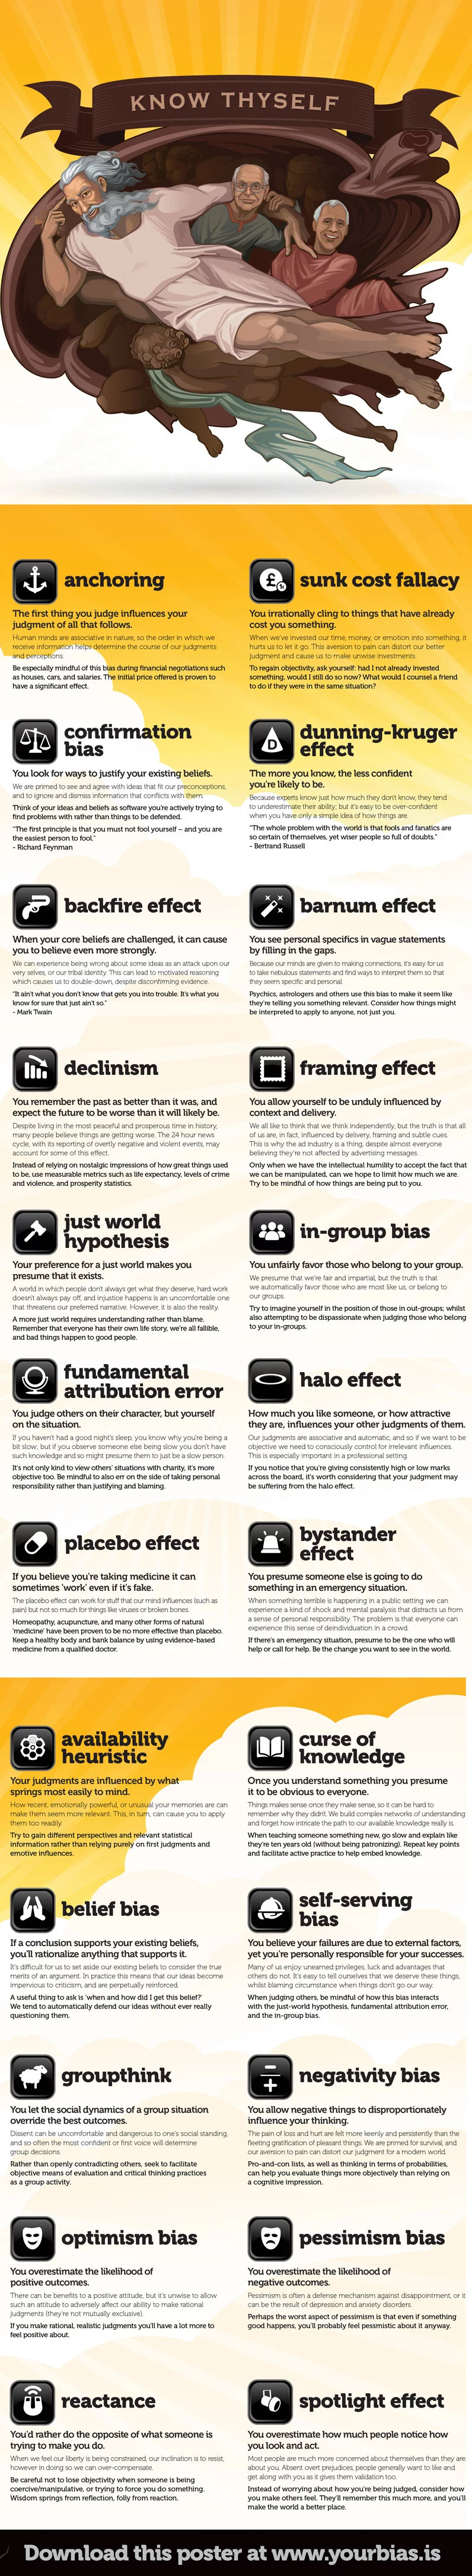 A list of 24 key cognitive biases that warp our perception of reality